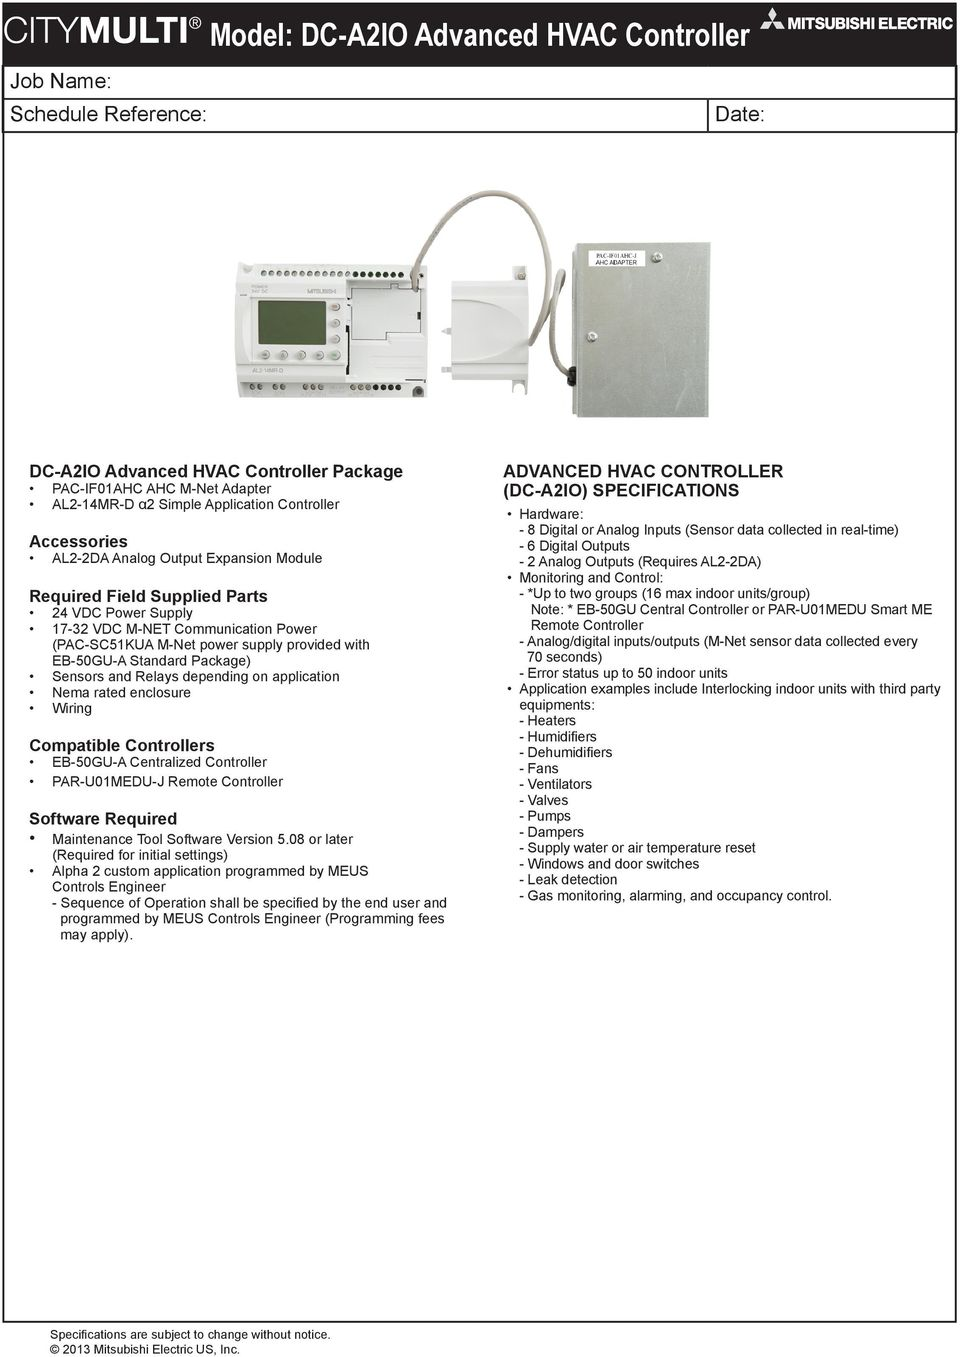 medium resolution of sensors and relays depending on application nema rated enclosure wiring compatible controllers eb 50gu